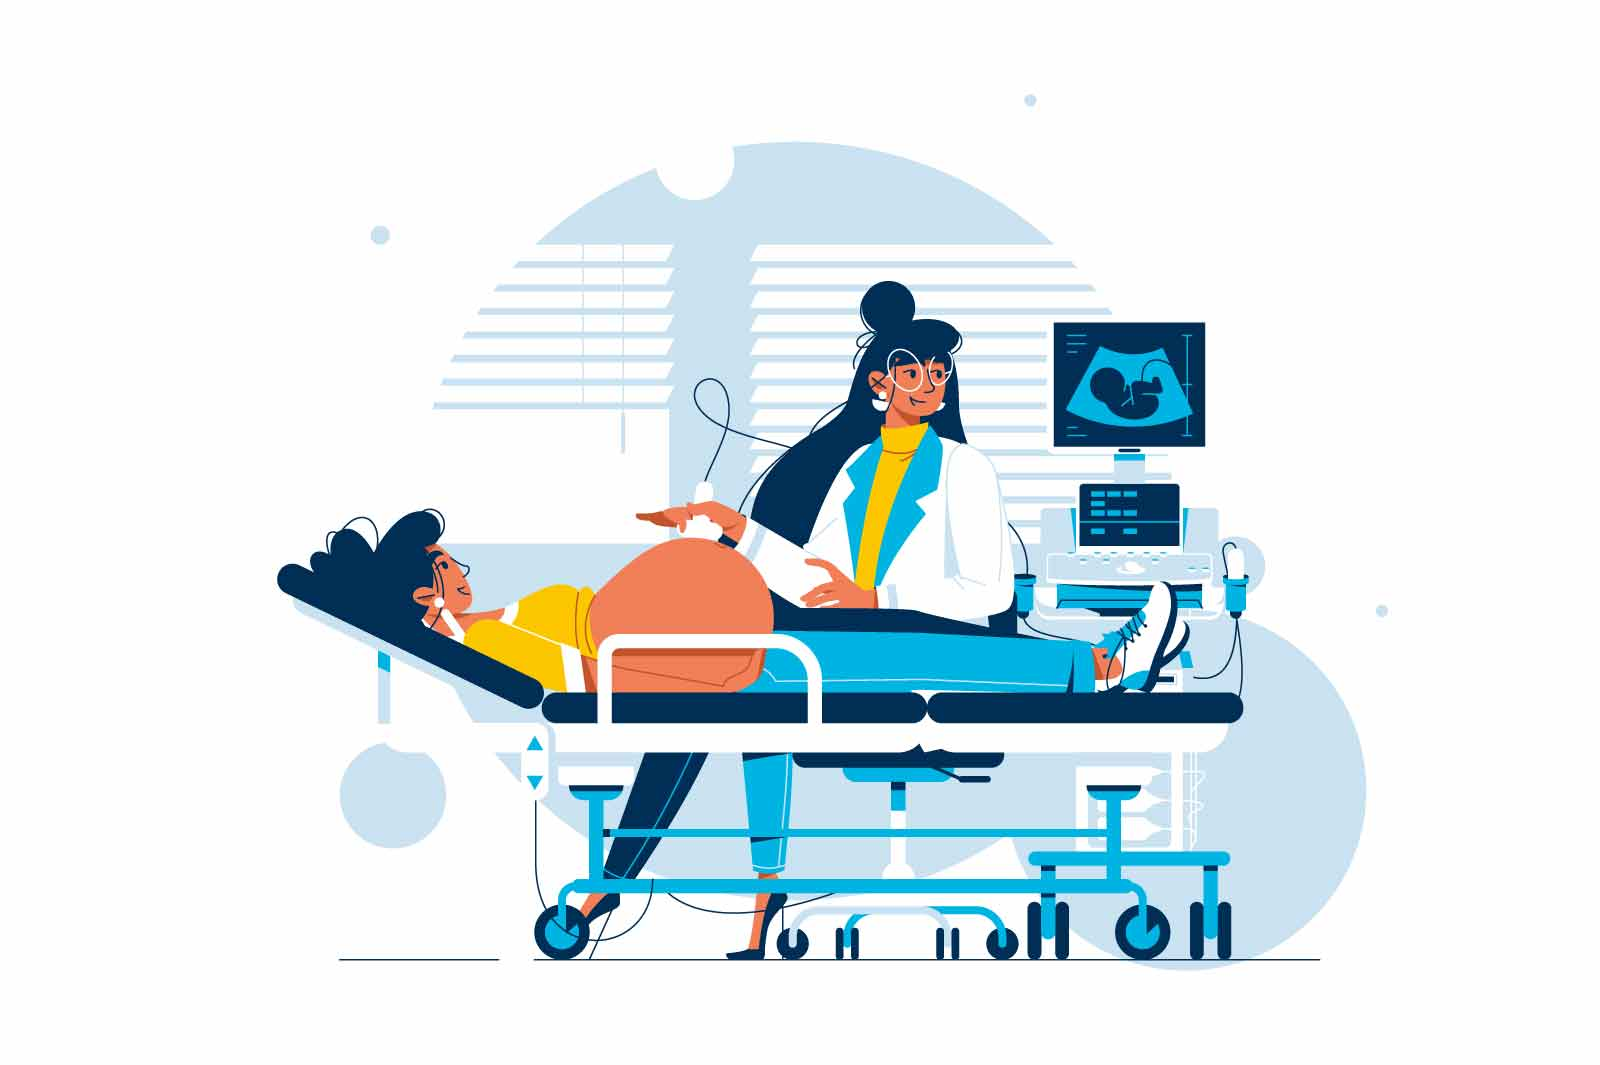 Ultrasound procedure of pregnant woman vector illustration. Doctor in uniform scanning future mother flat style. Pregnancy, medicine concept